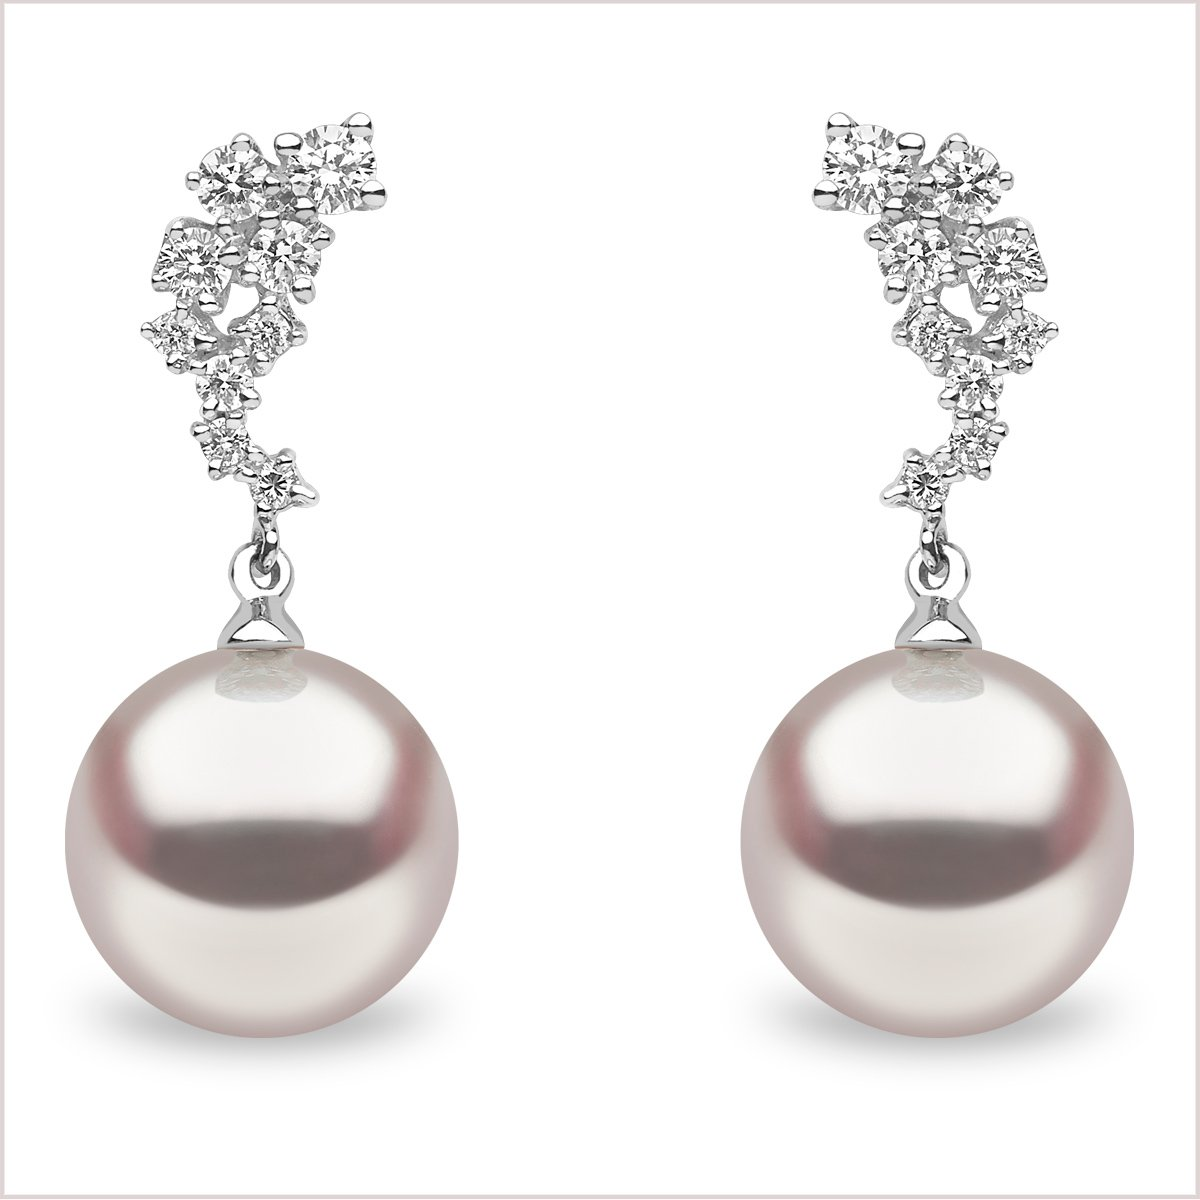 Yoko London Classic South Sea Pearl and Diamond Earrings